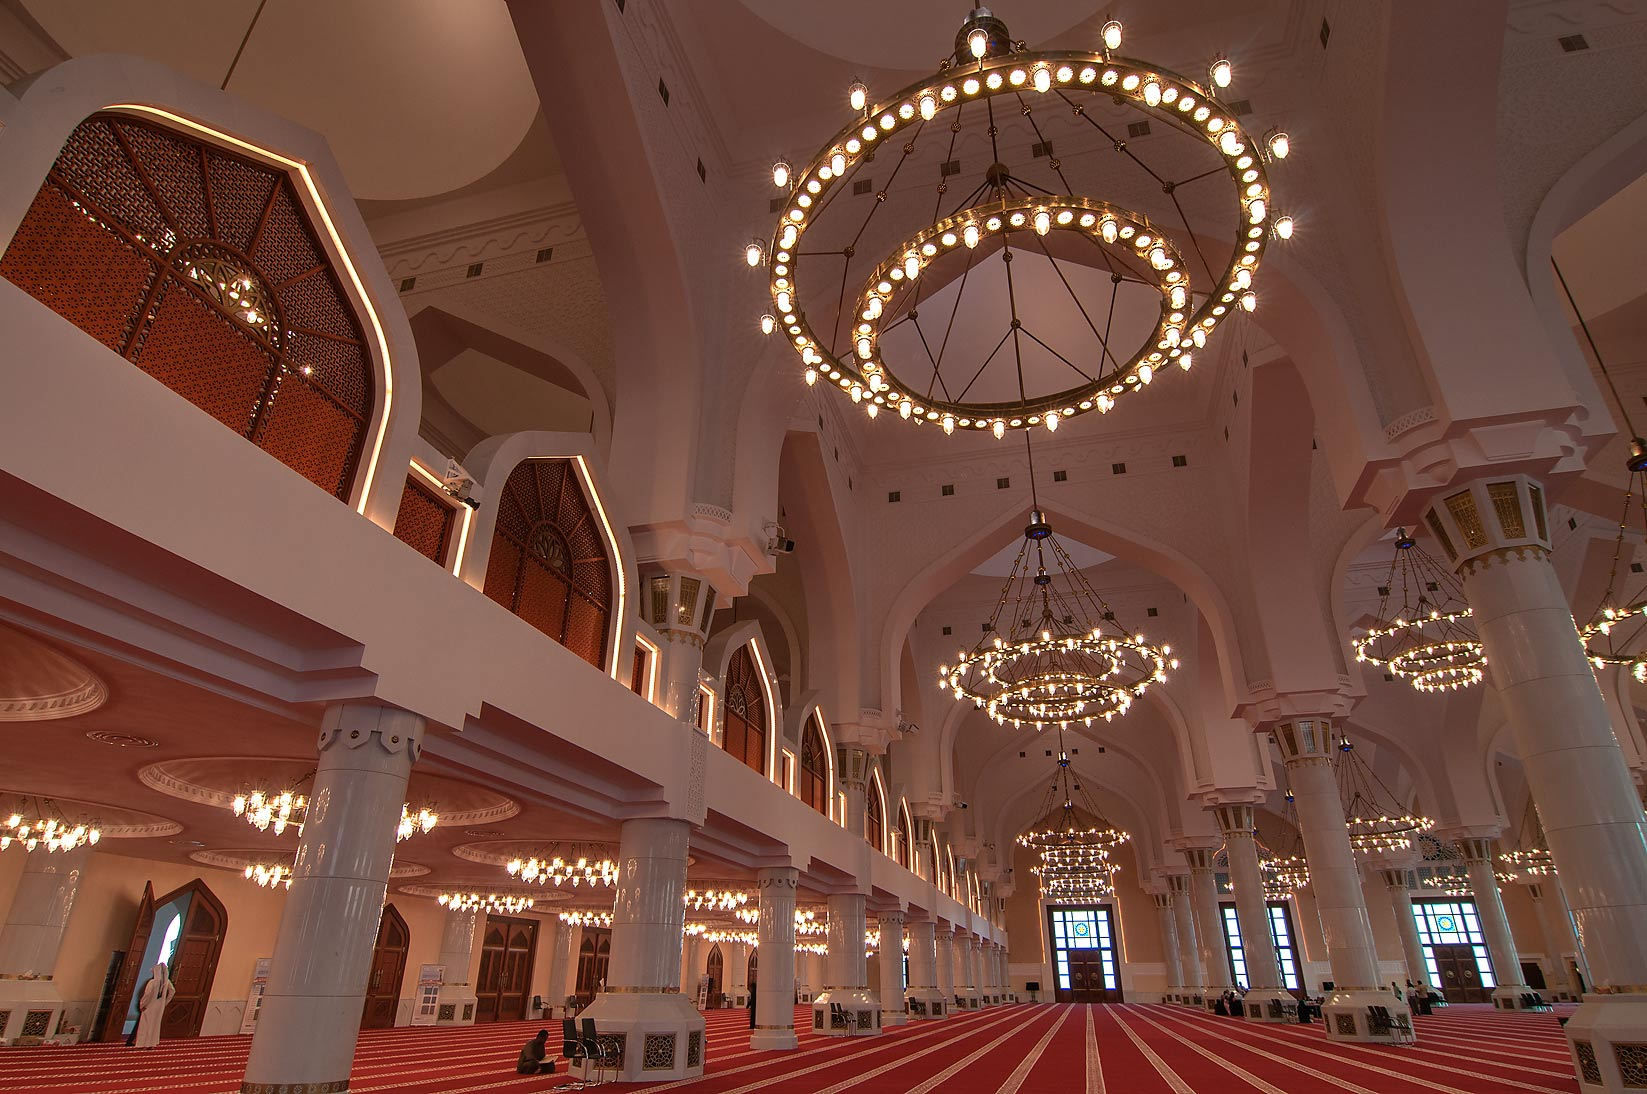 Balconies inside State Mosque (Sheikh Muhammad Ibn Abdul Wahhab Mosque). Doha, Qatar